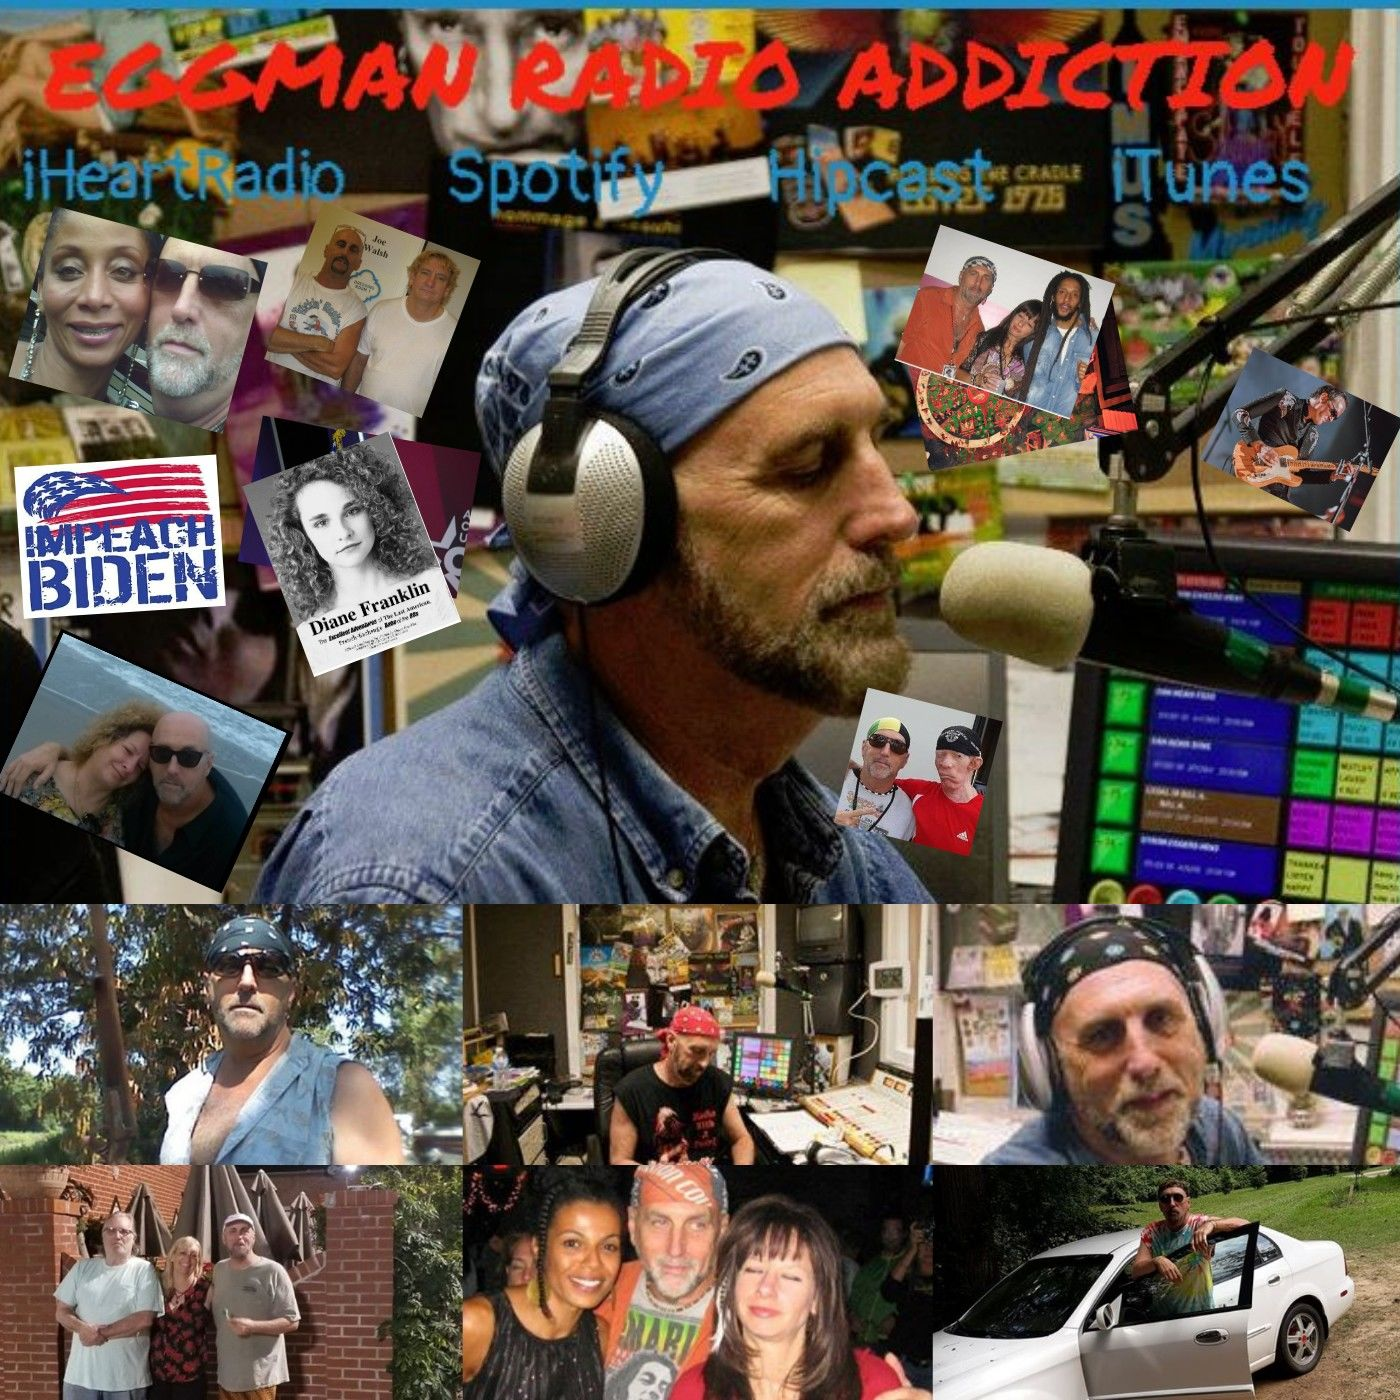 EGGMAN RADIO ADDICTION